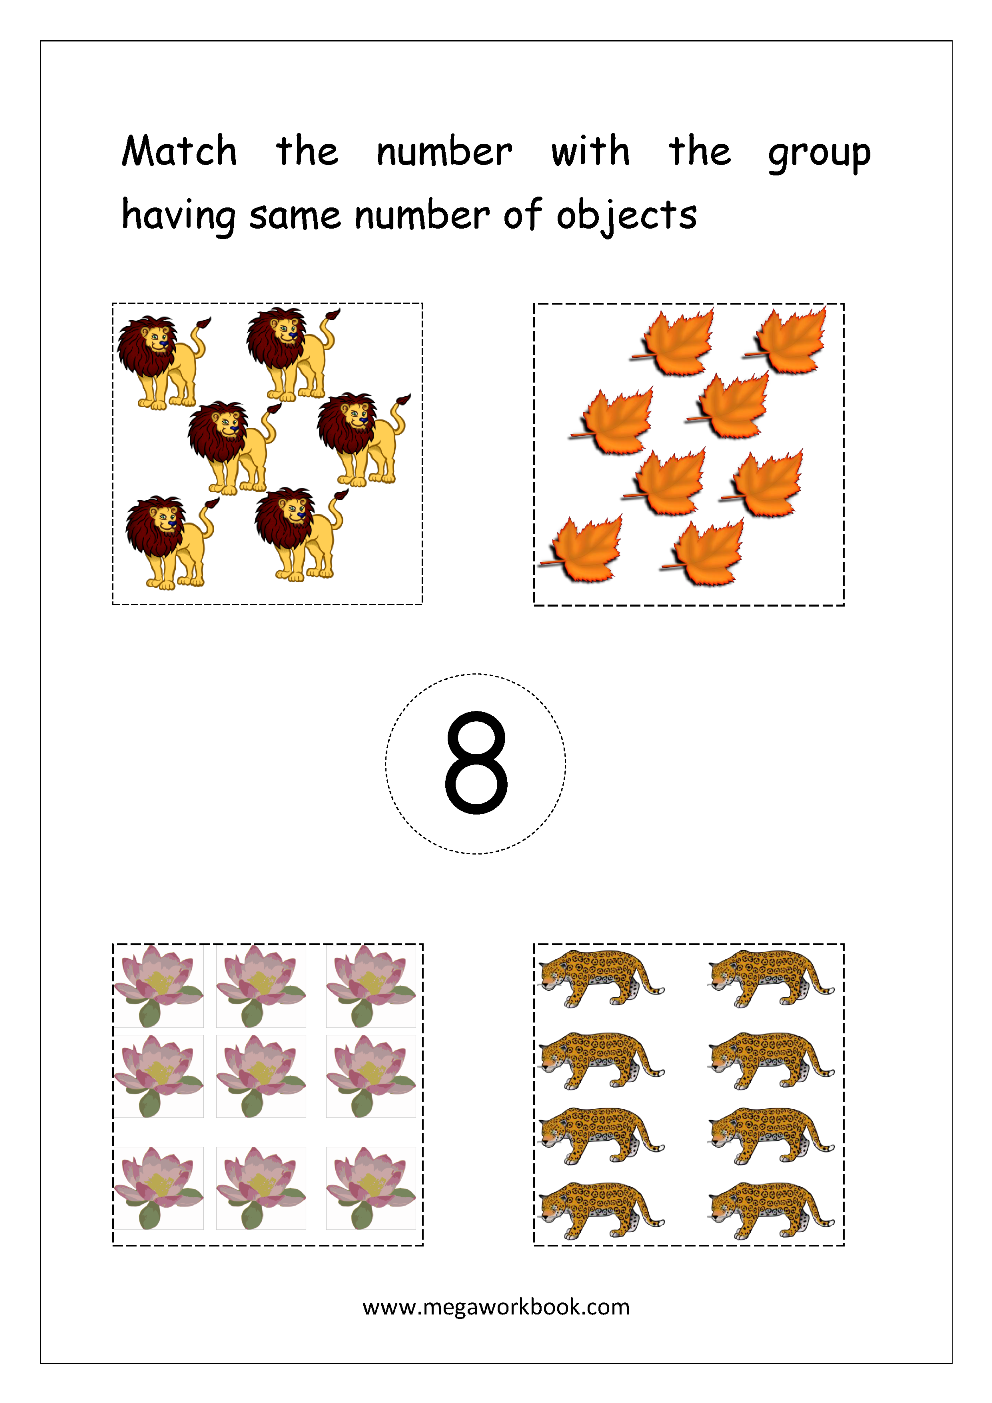 math worksheet : math worksheets matching numbers to objects  educational math  : Math Matching Worksheets